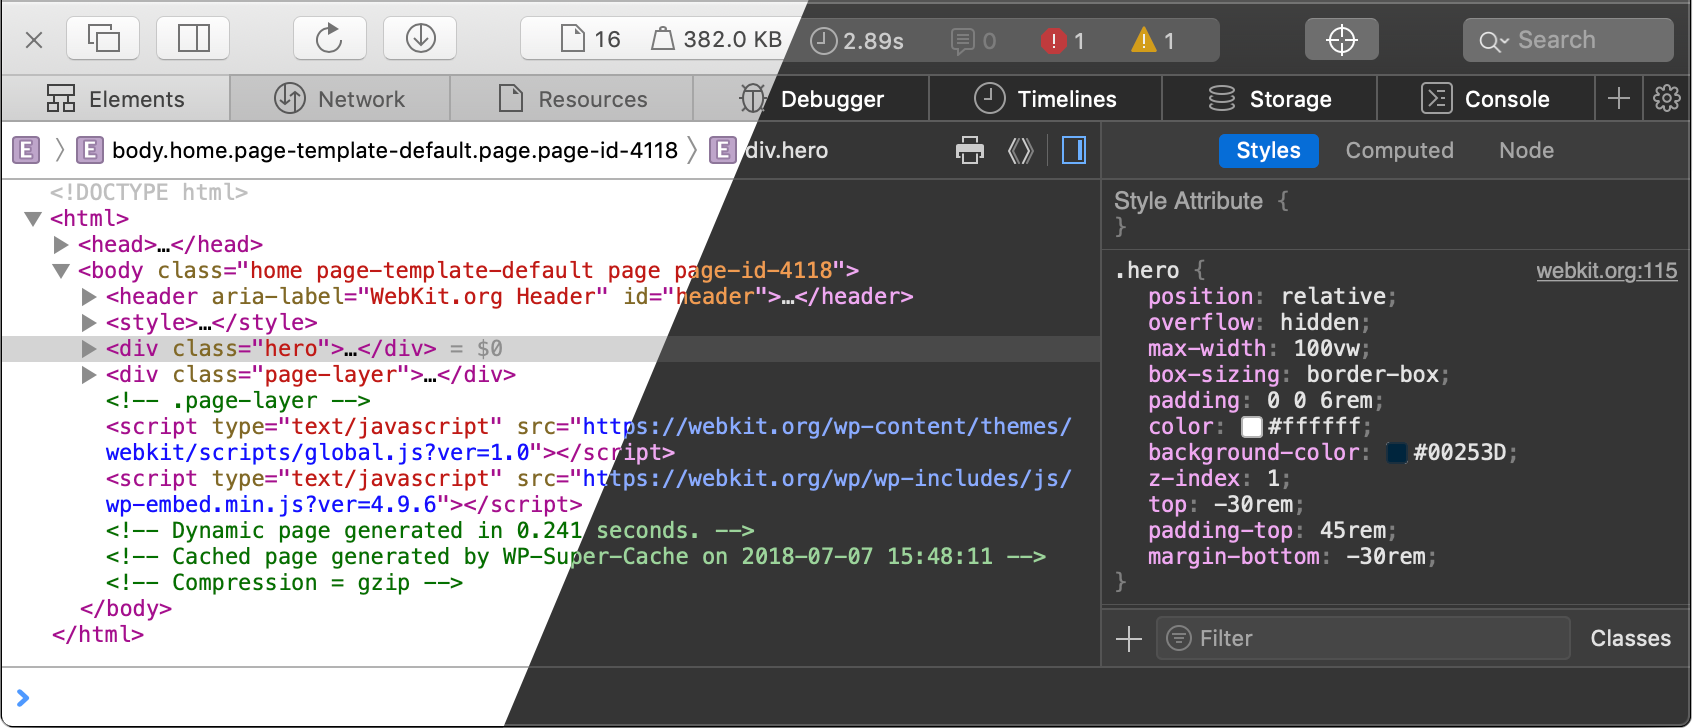 Web Inspector: Light/Dark color schemes